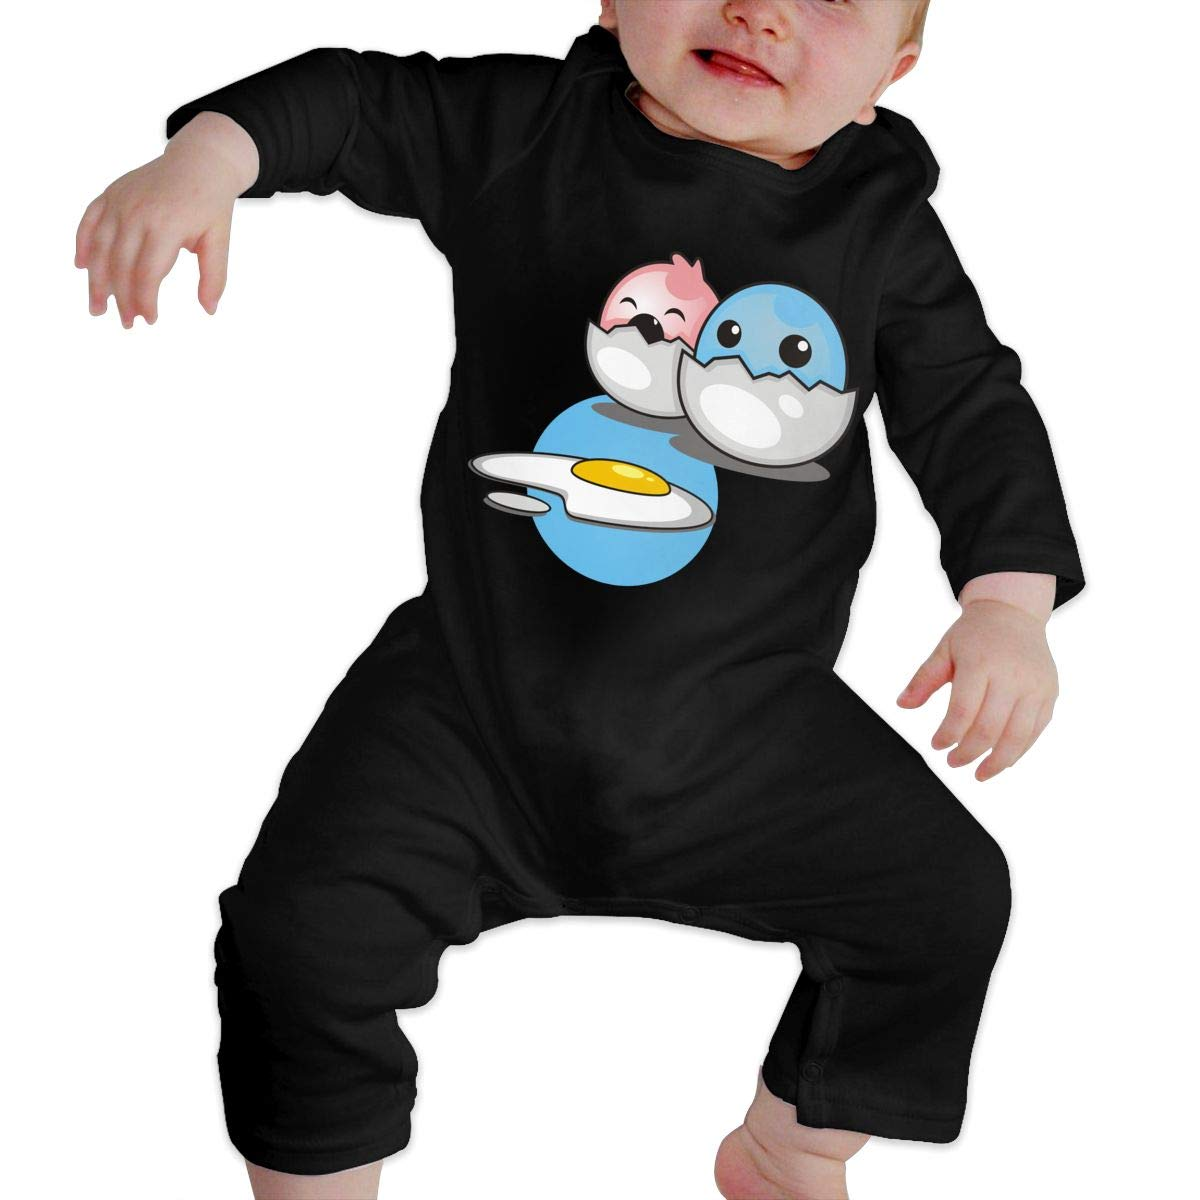 Fasenix Cute Eggs Pink Blue Newborn Baby Boy Girl Romper Jumpsuit Long Sleeve Bodysuit Overalls Outfits Clothes